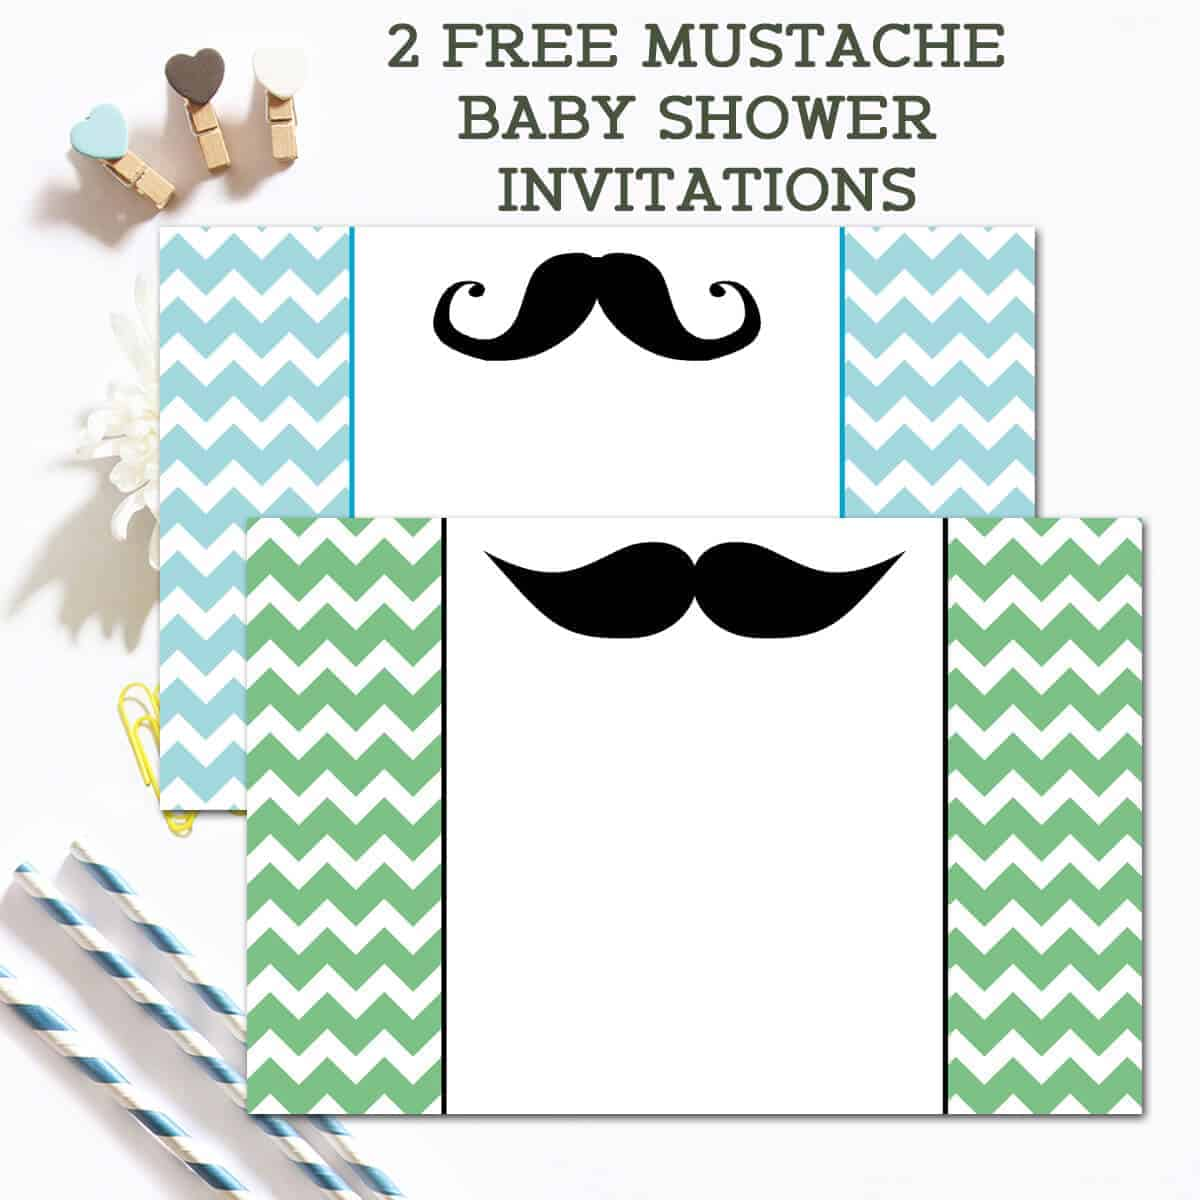 graphic regarding Free Printable Mustache Baby Shower Invitations referred to as No cost Mustache Kid Shower Invites - Ilonas Pion